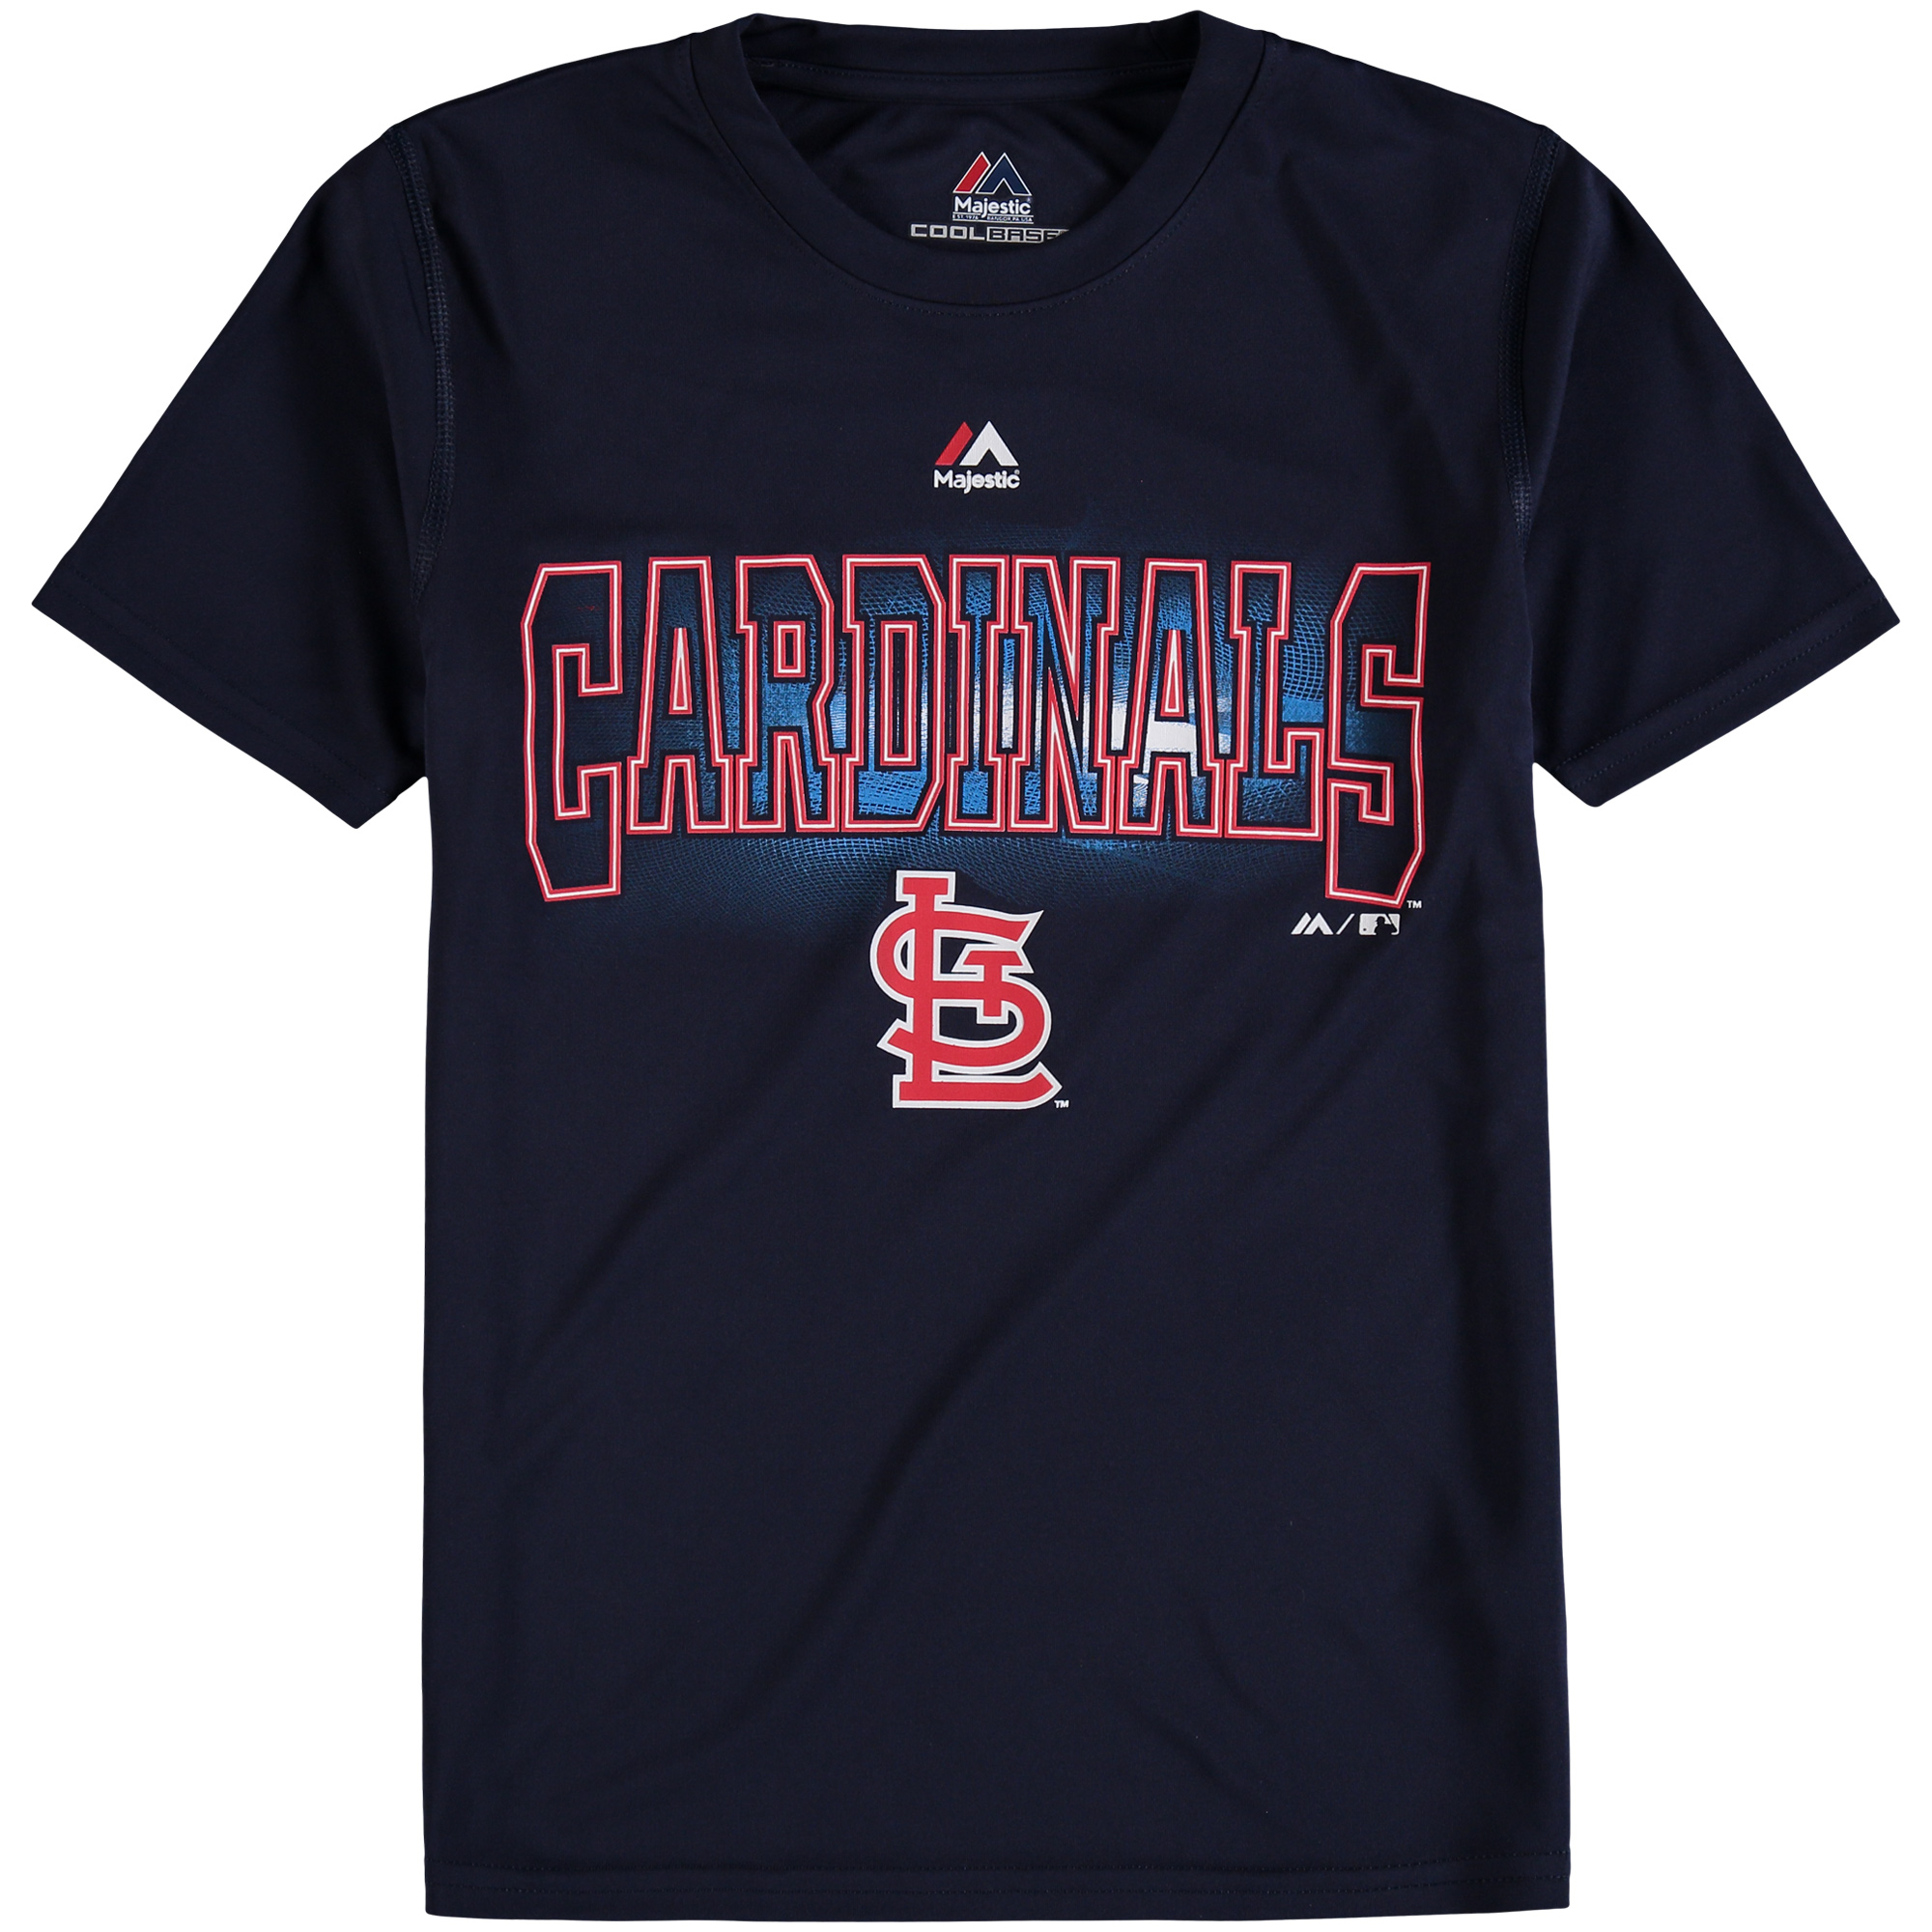 Youth Majestic Navy St. Louis Cardinals Light Up the Field T-Shirt